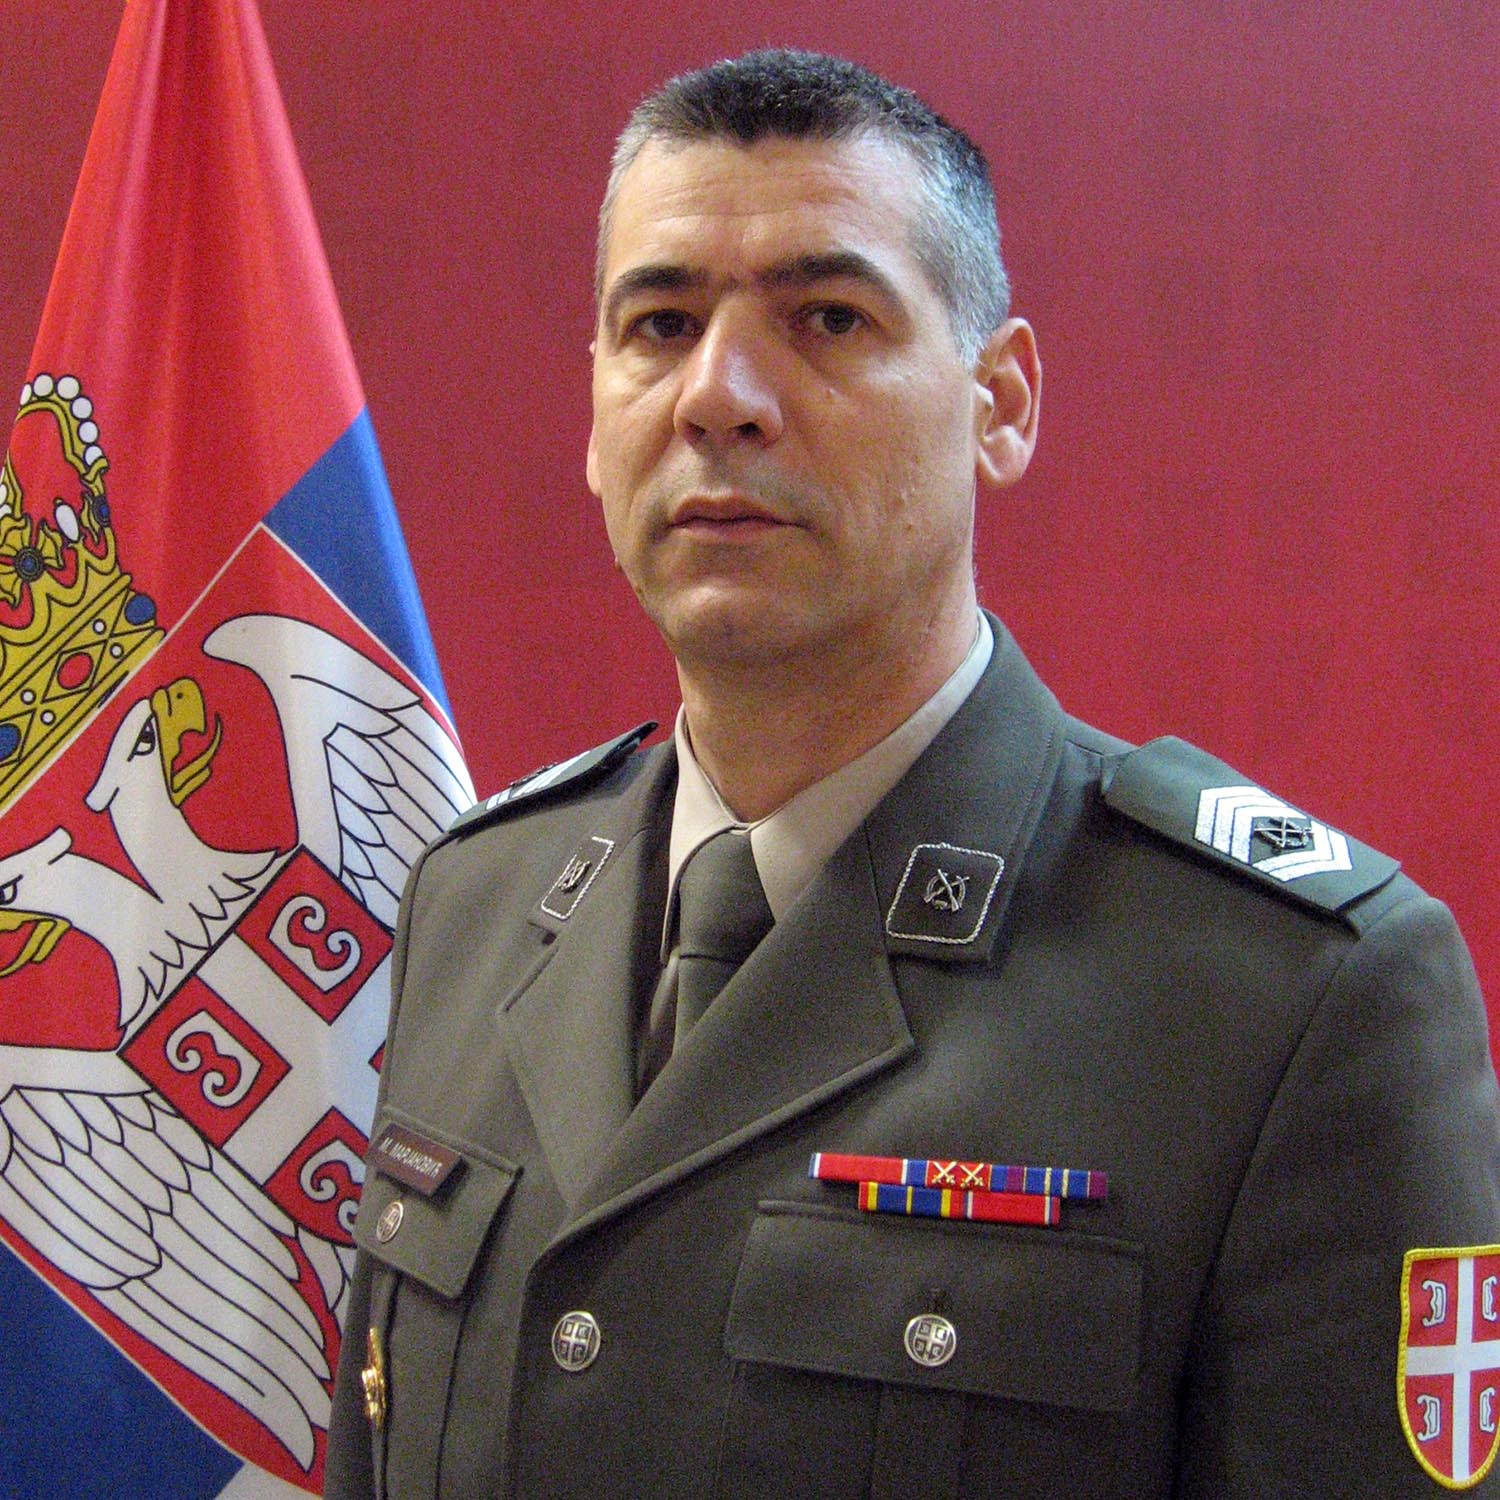 Sergeant Major Miroslav Marjanovic